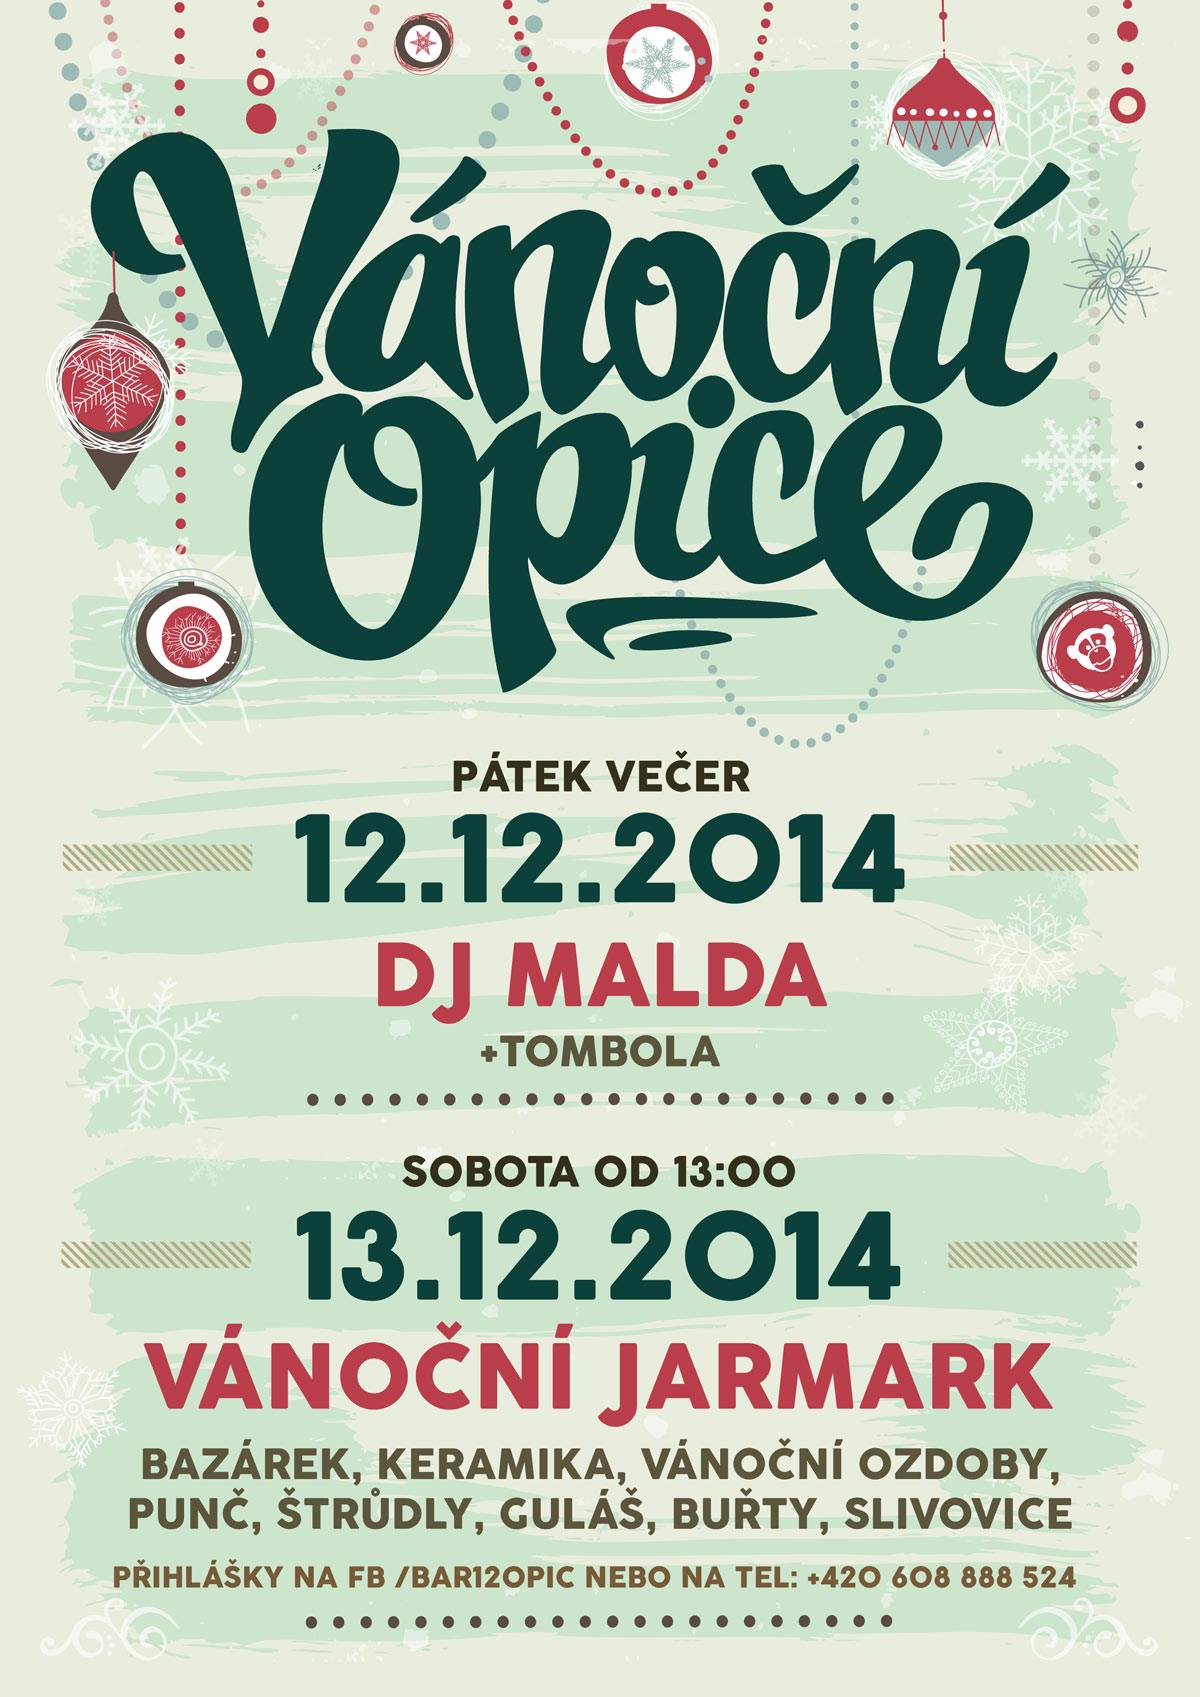 12 opic, 13. 12. 2014